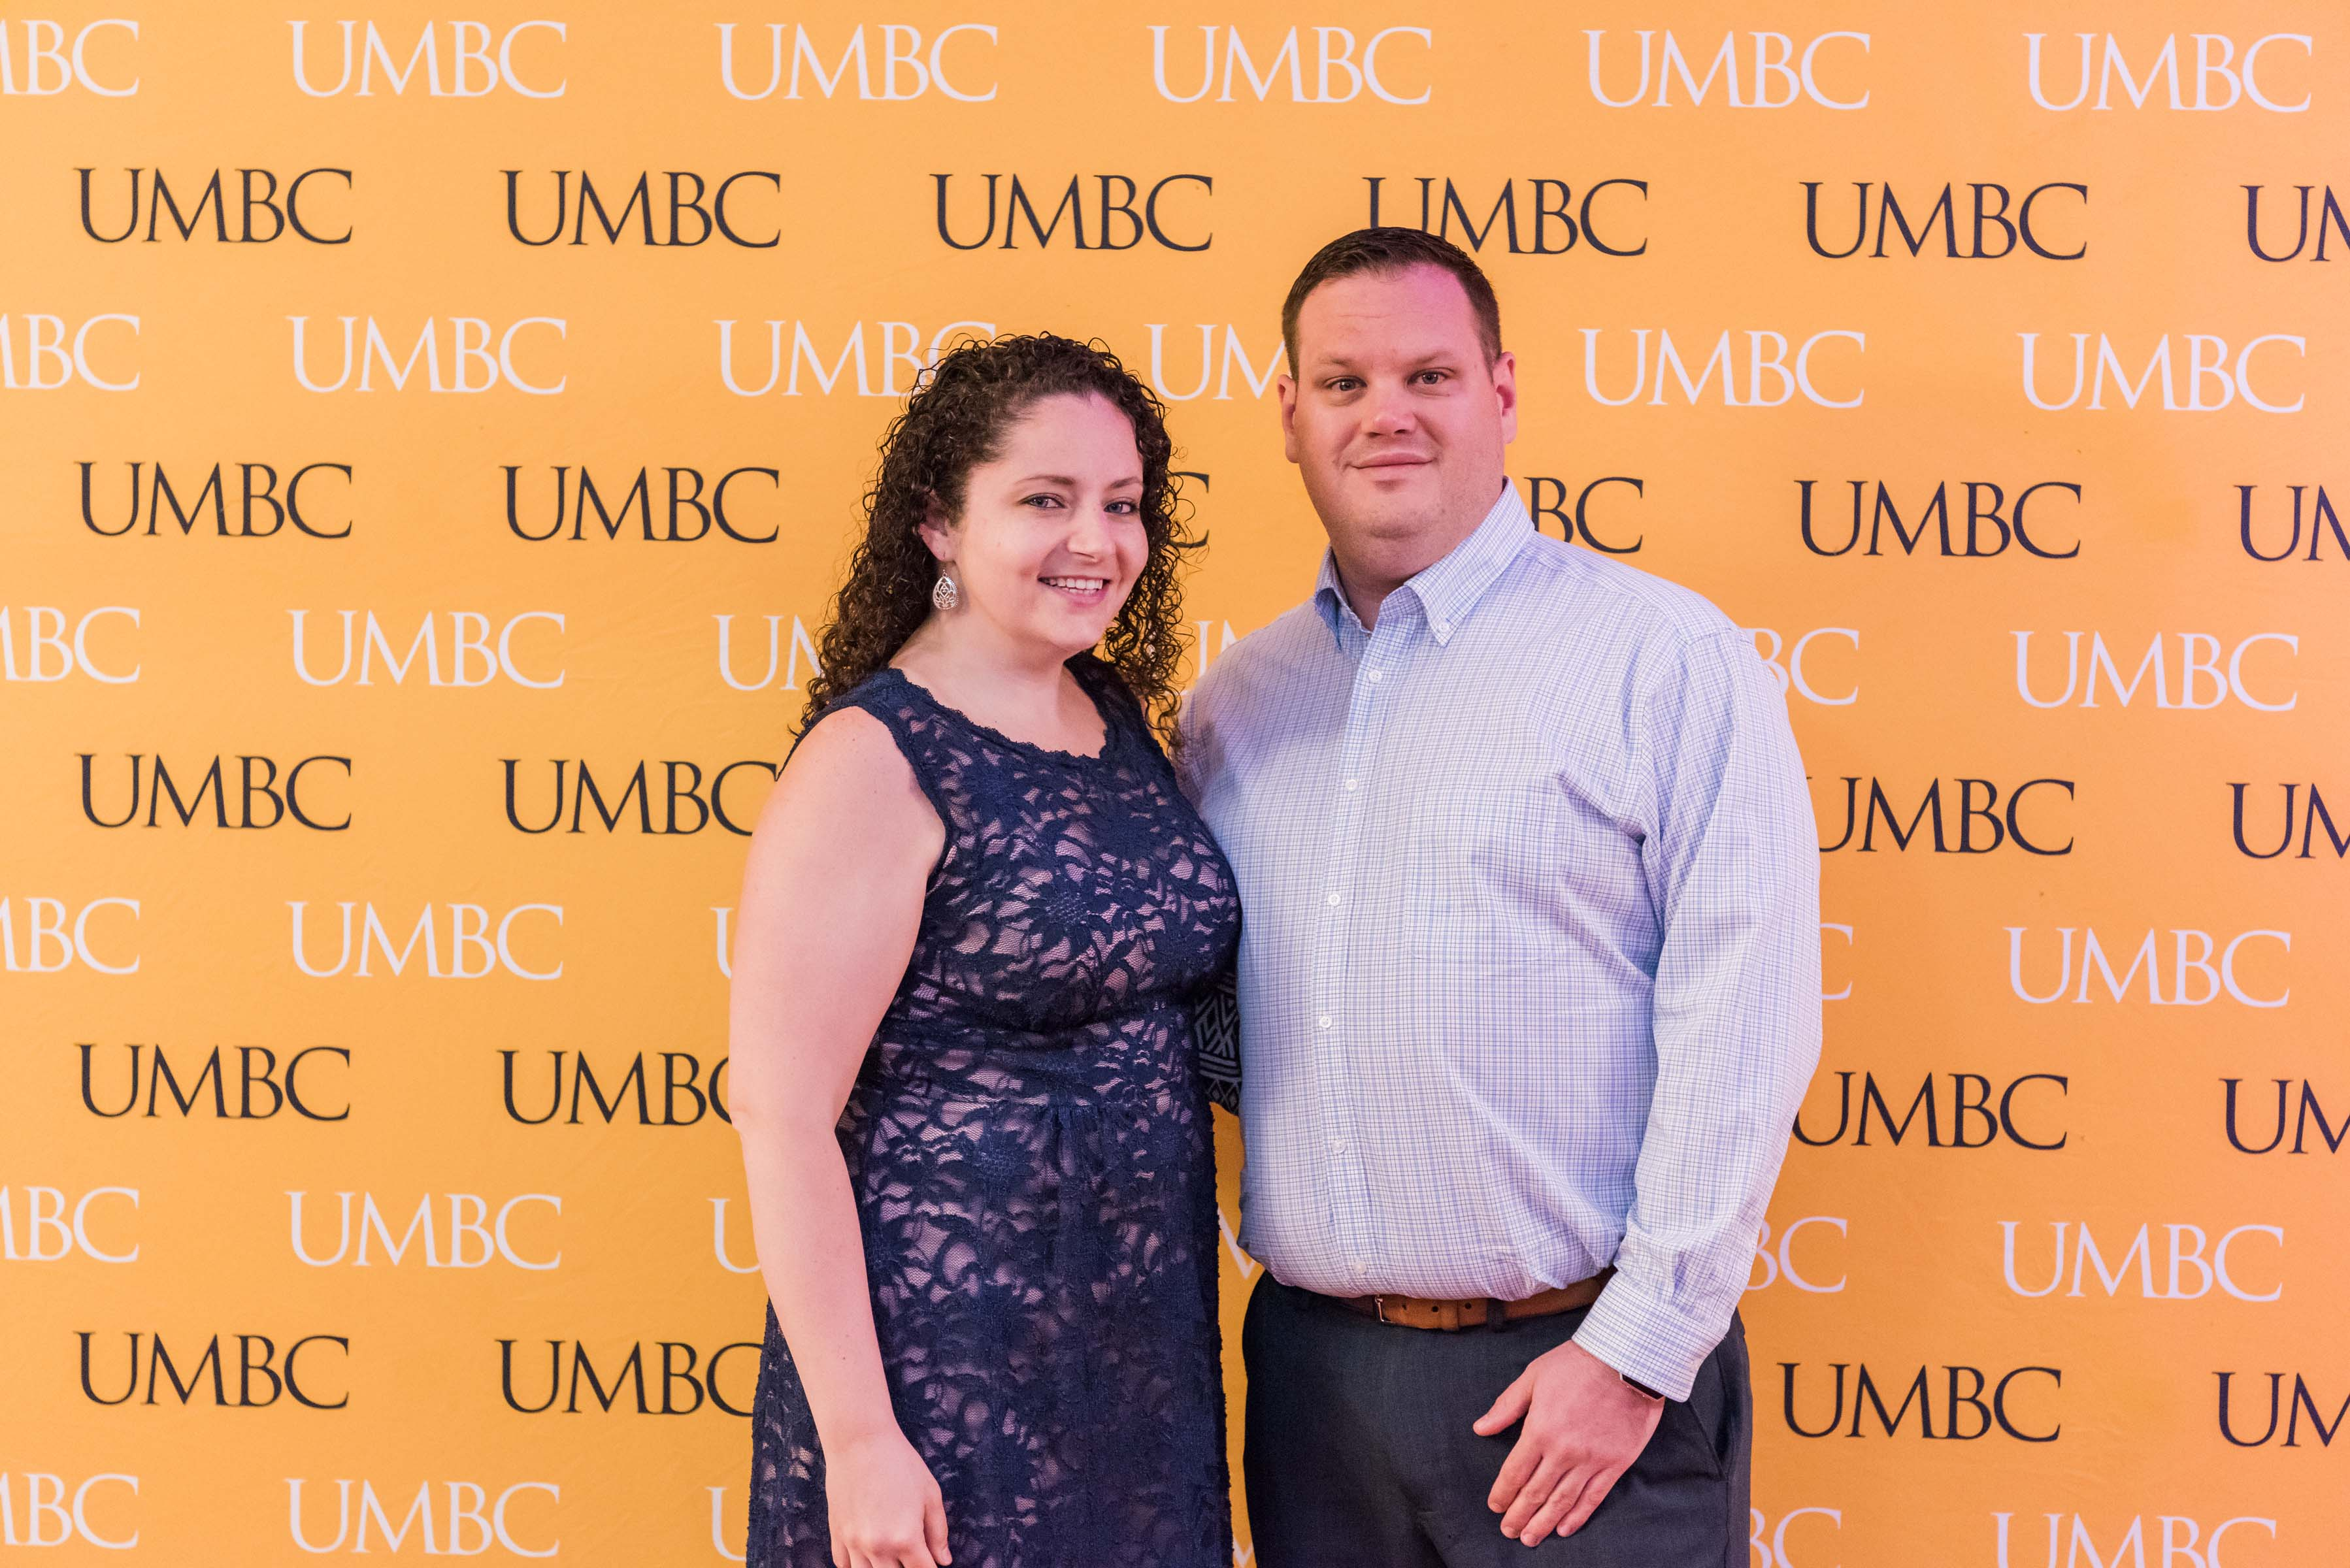 Man and woman pose together with UMBC wall for CYA wine tasting